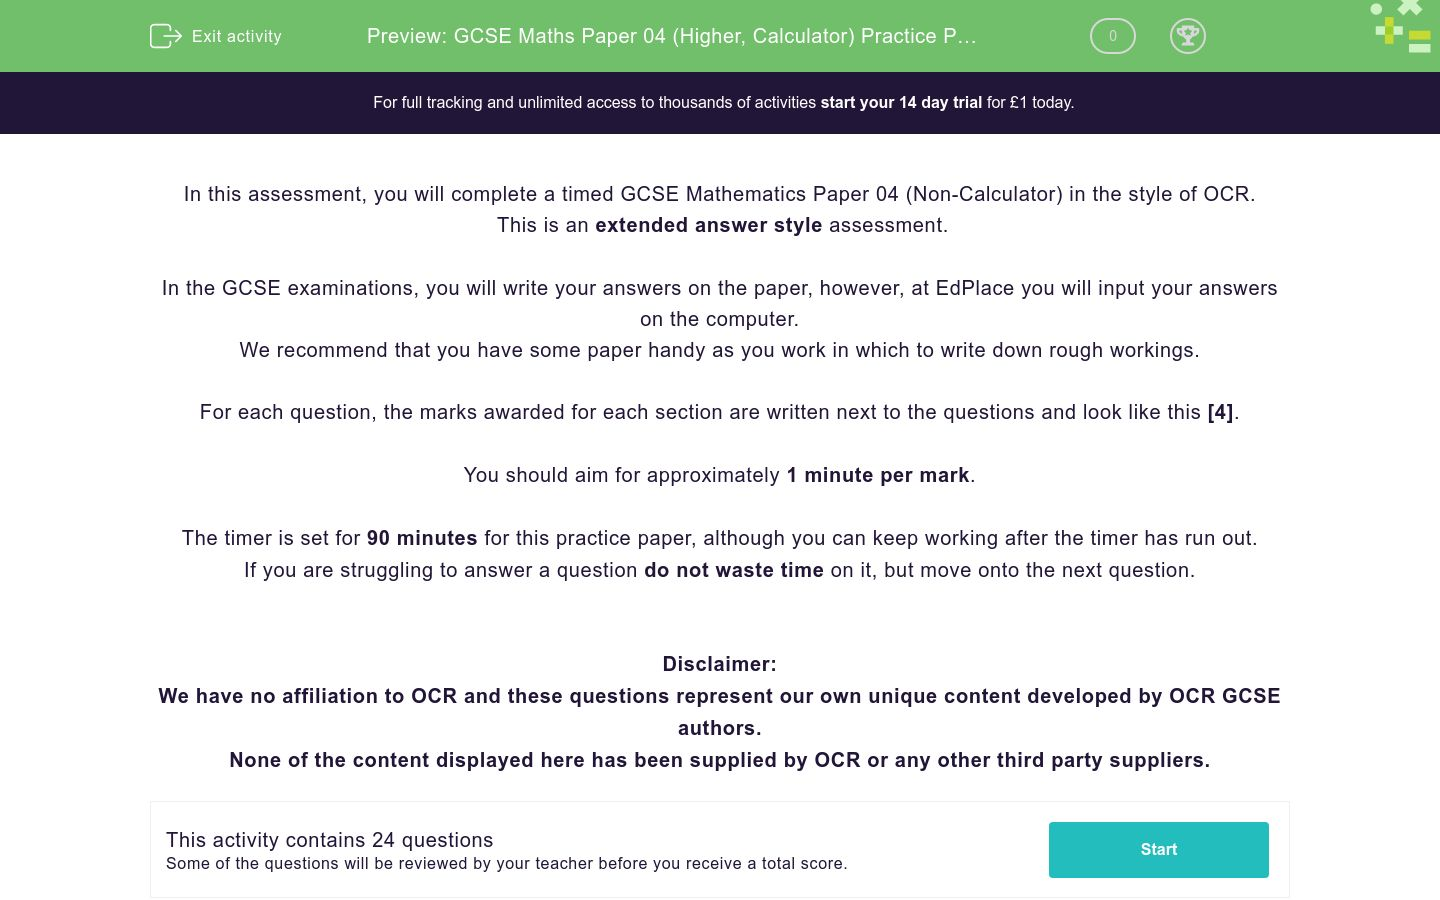 'GCSE Maths Paper 04 (Higher, Calculator) Practice Paper in the Style of OCR' worksheet